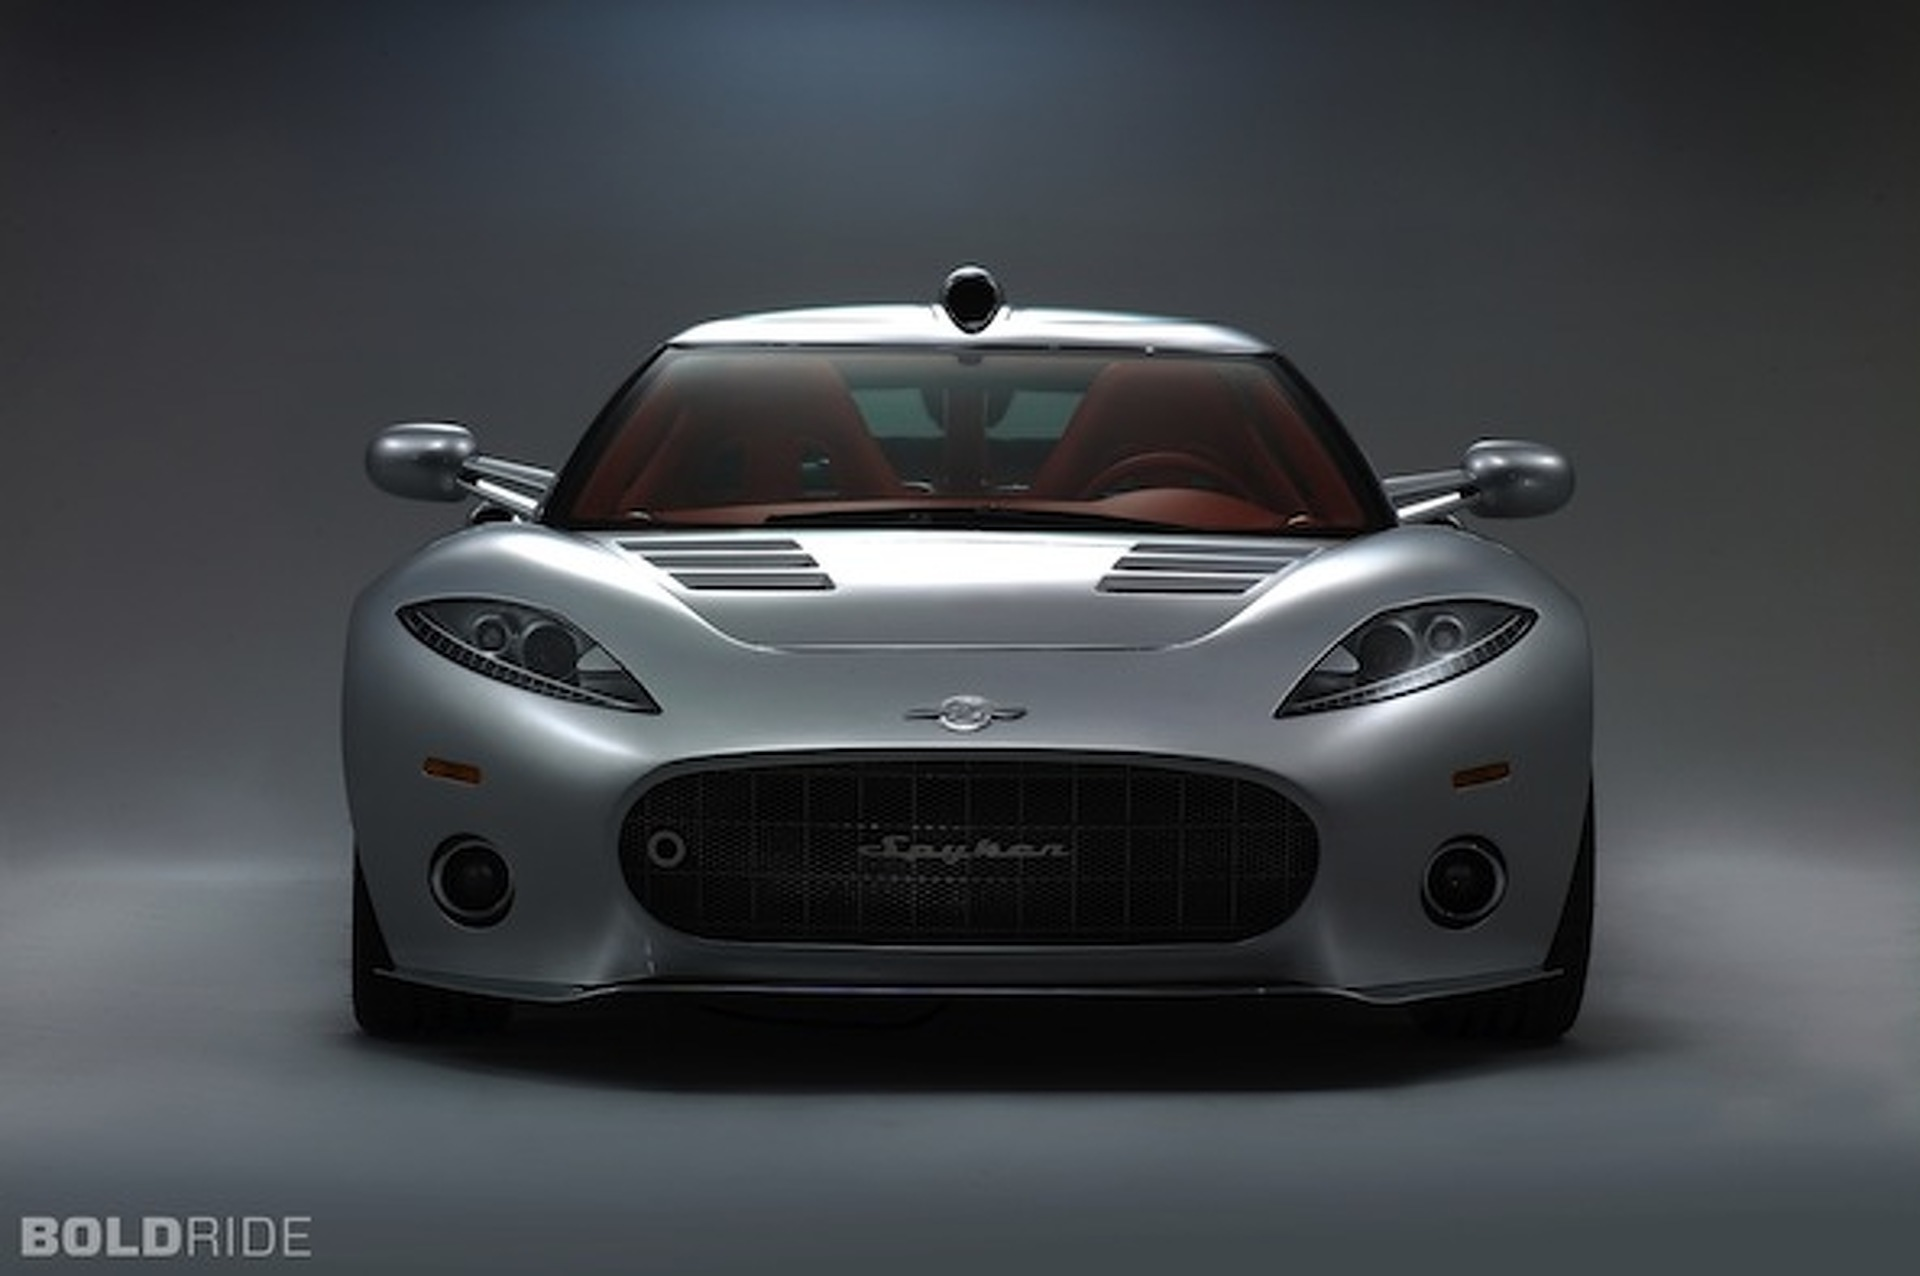 Next-Gen Spyker C8 Aileron Going Supercharged?